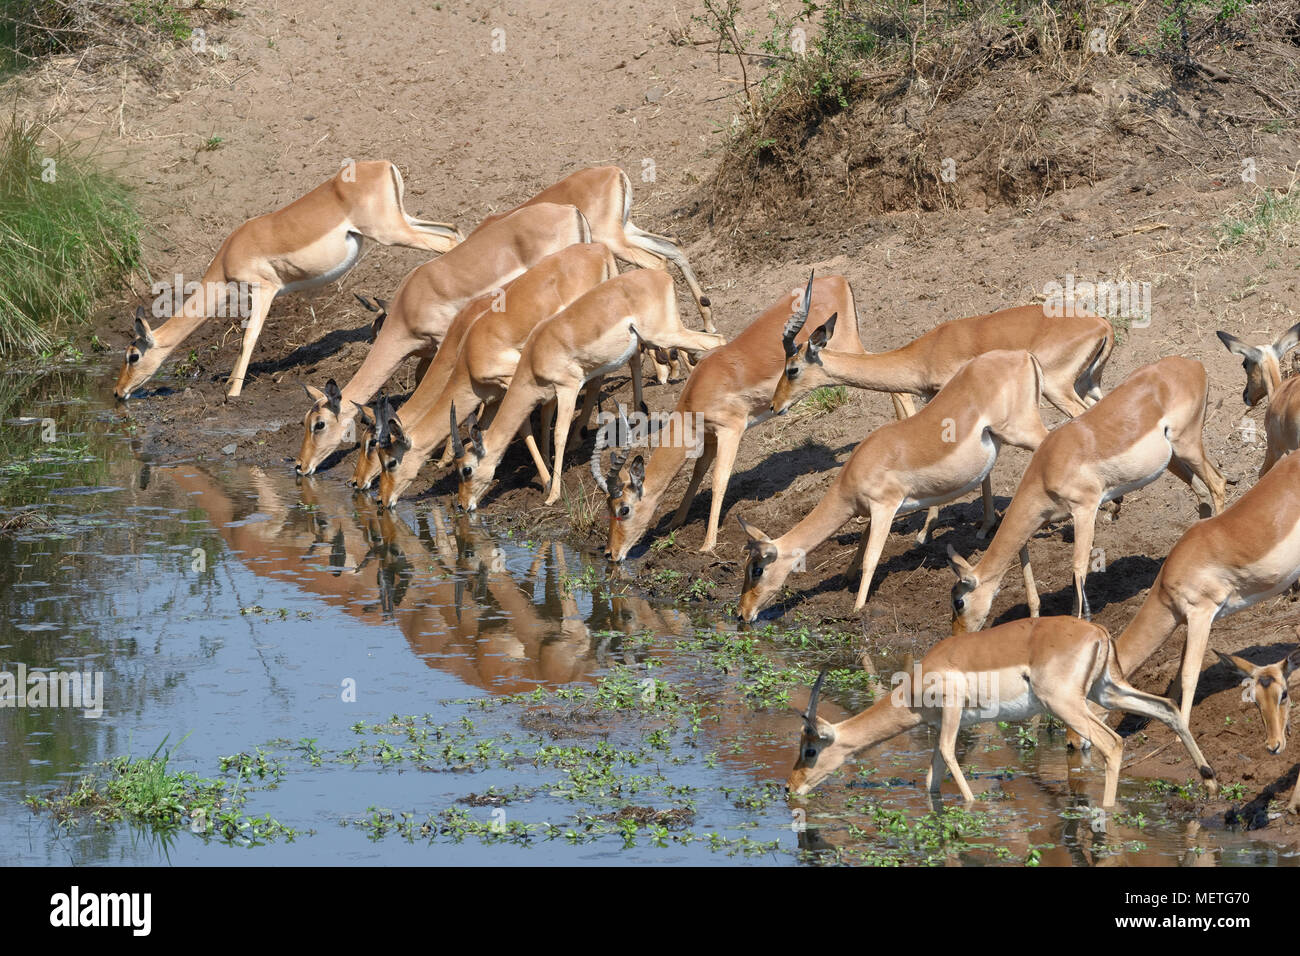 Herd of impalas (Aepyceros melampus) drinking at a waterhole, Kruger National Park, South Africa, Africa Stock Photo